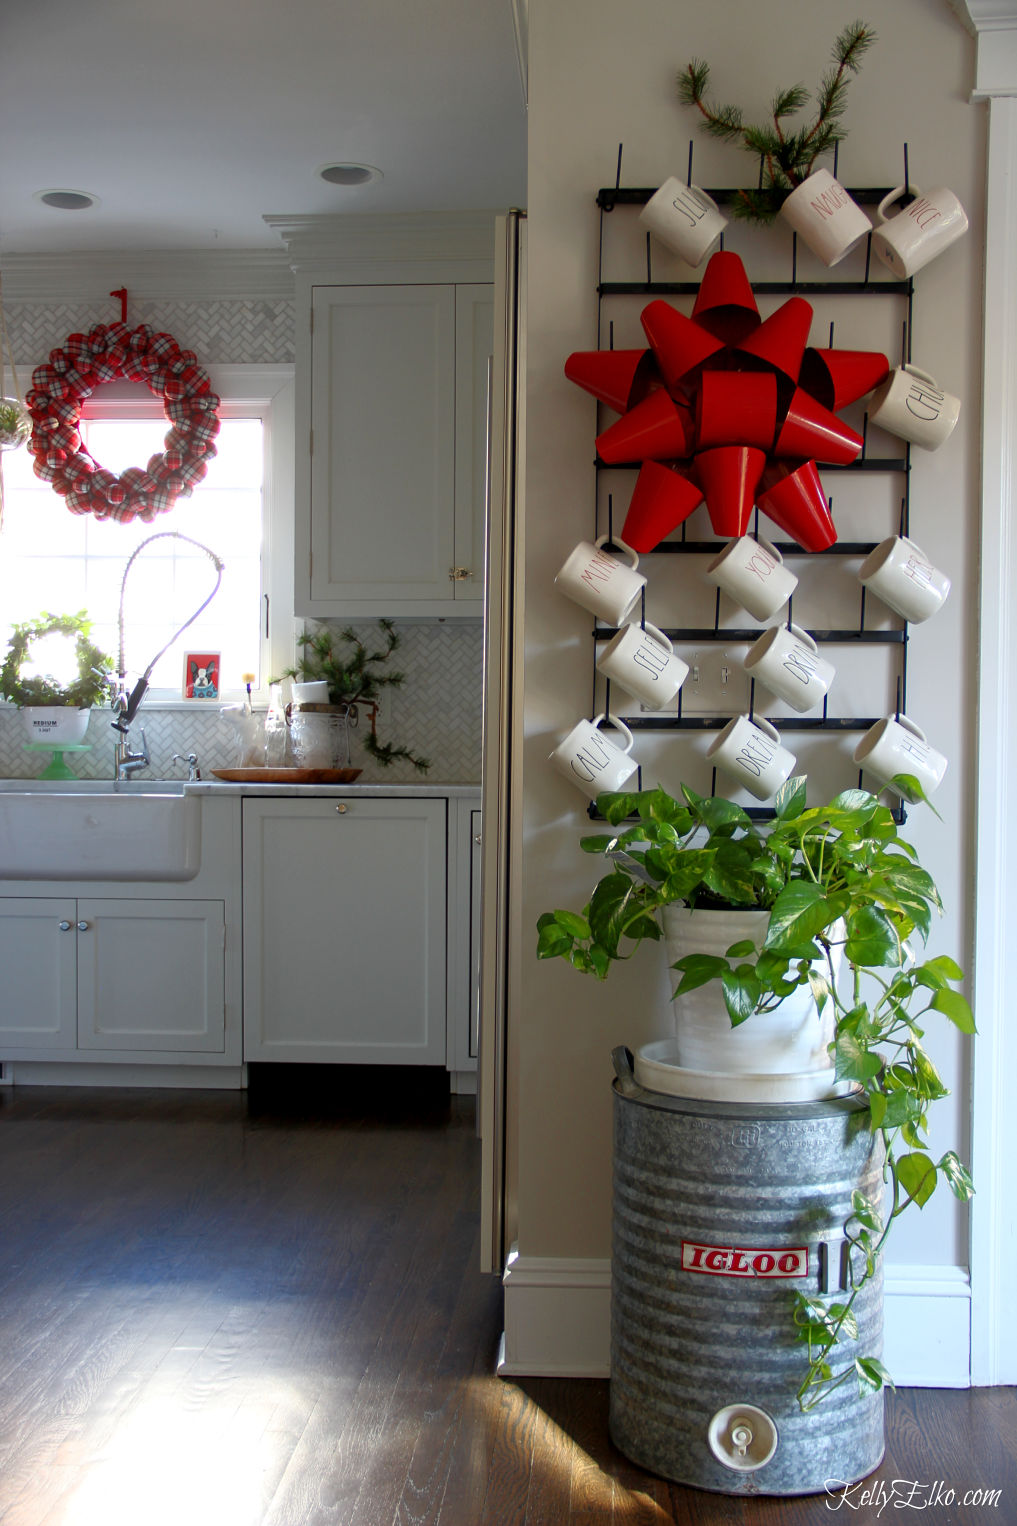 Love this Christmas kitchen with touches of red and green kellyelko.com #farmhousechristmas #christmaskitchen #christmasdecor #christmasdecorations #christmaswreath #raedunn